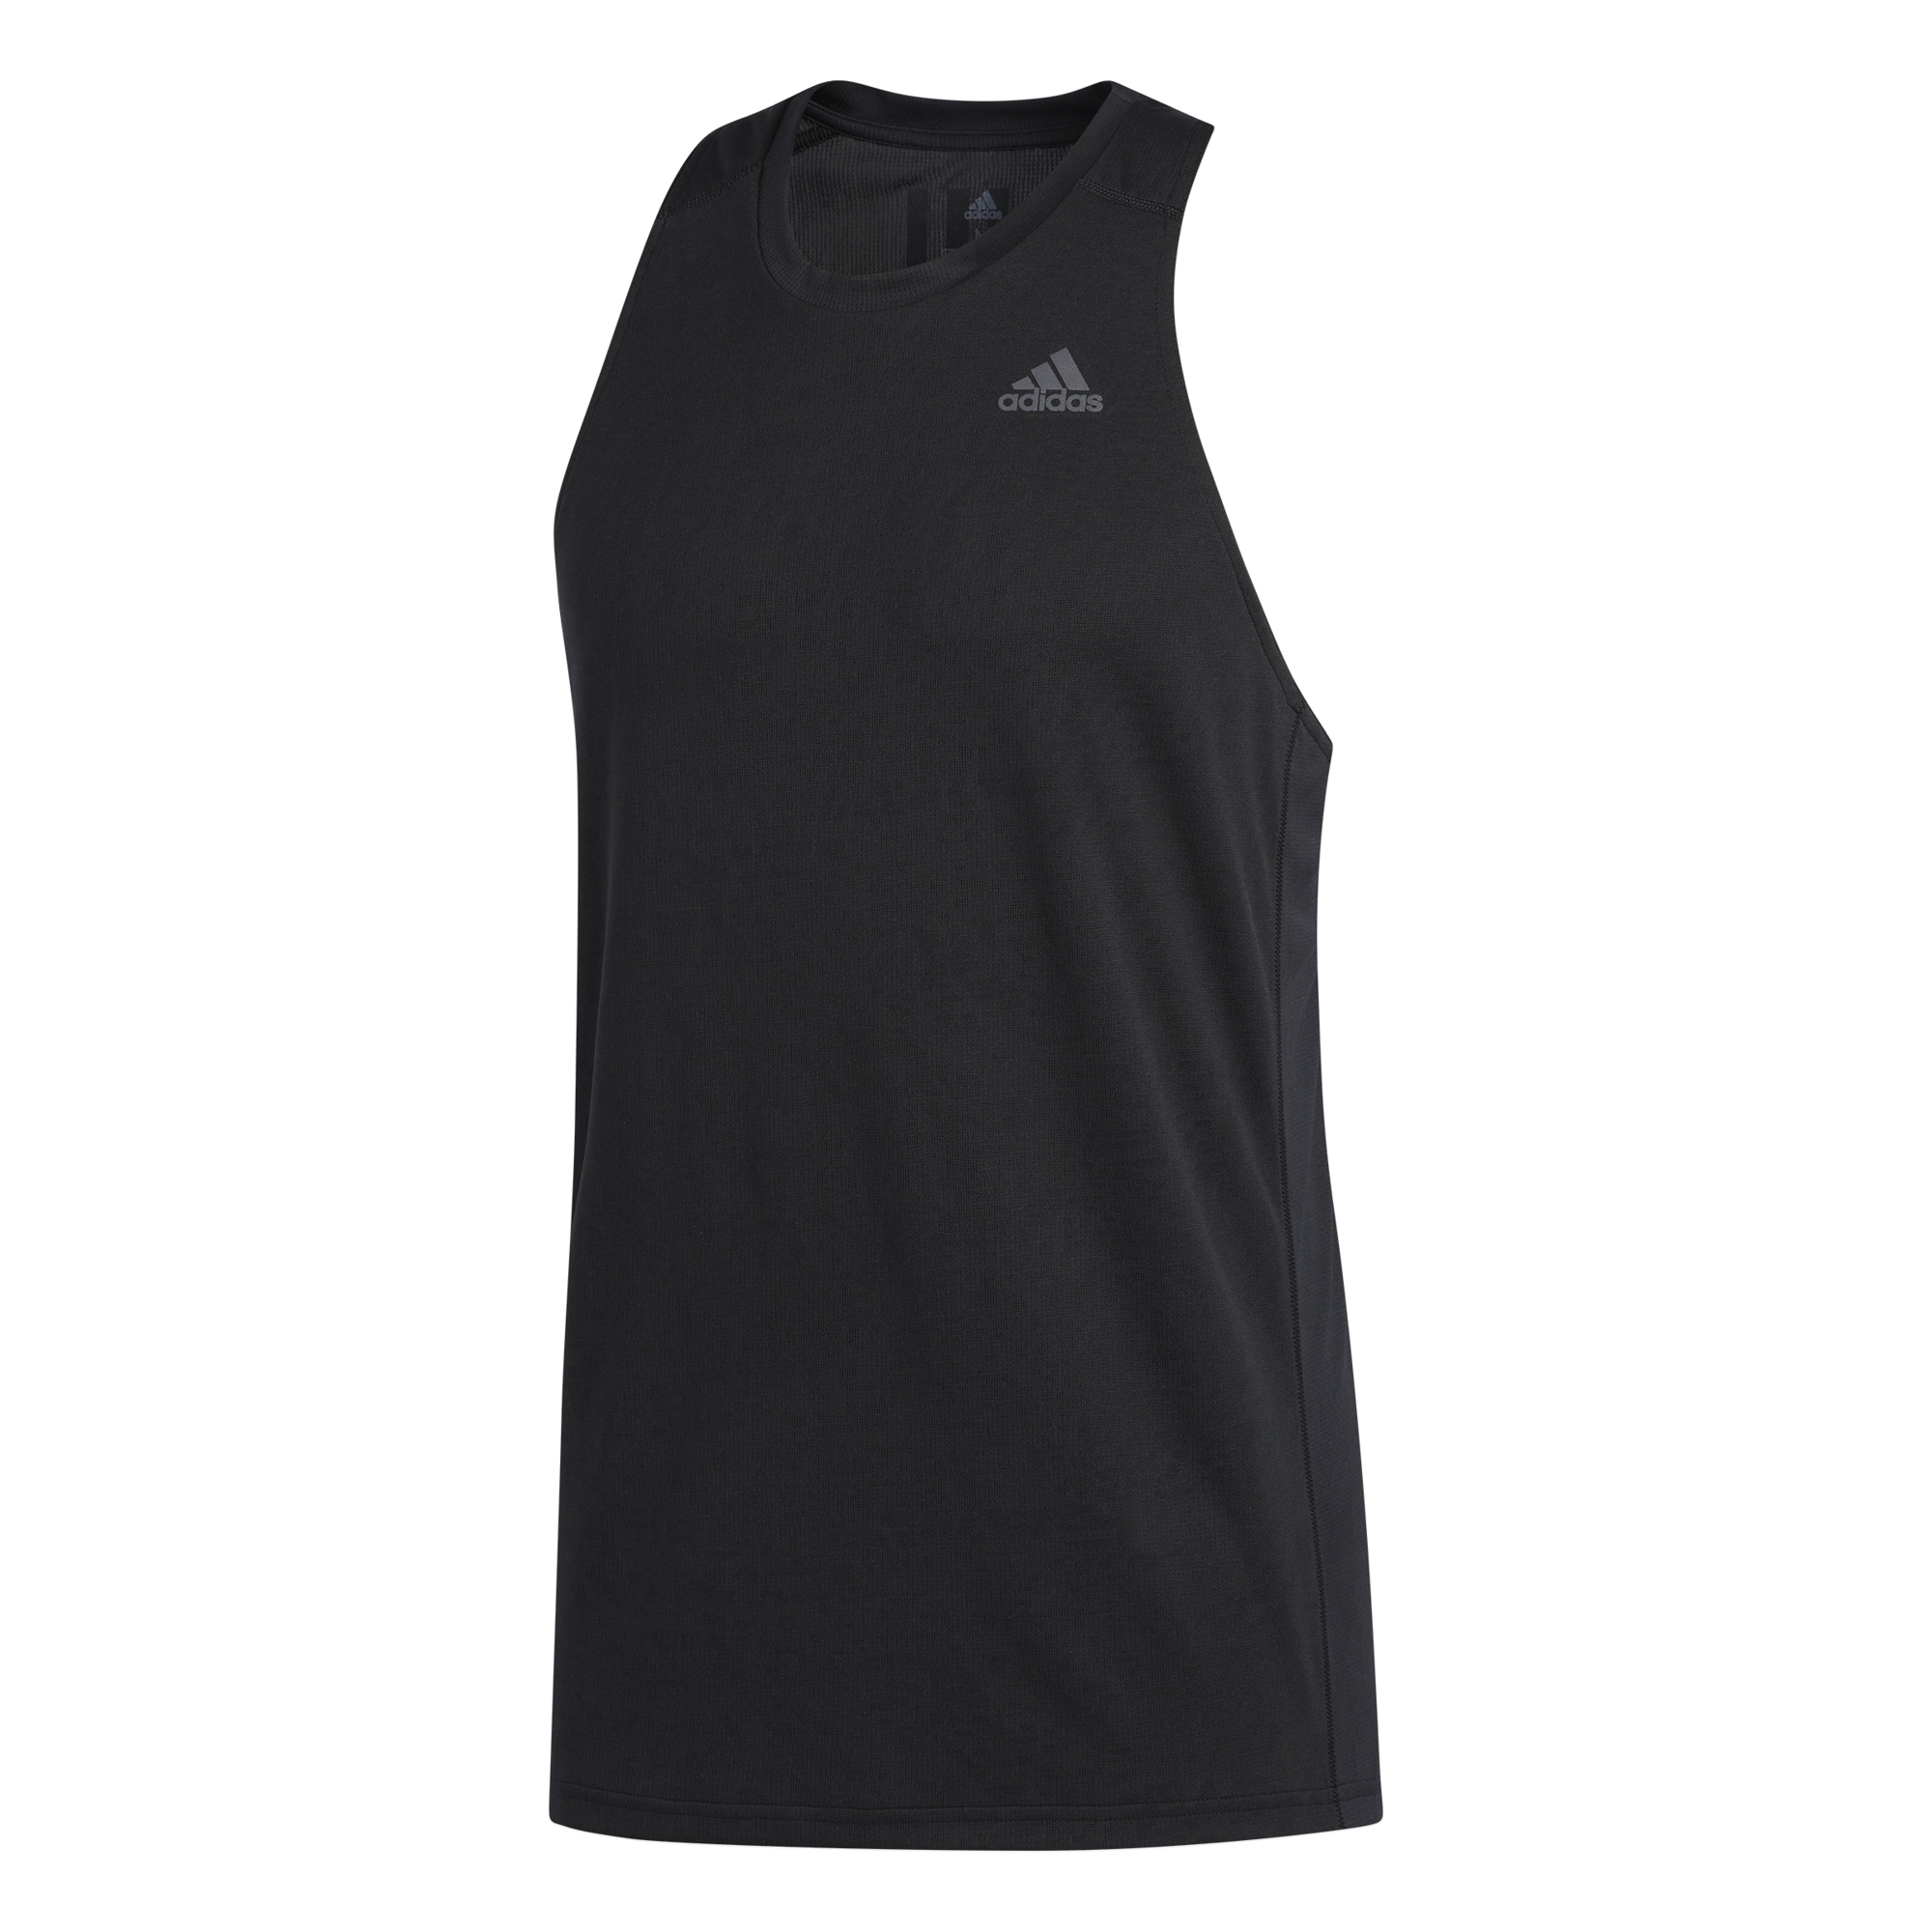 adidas Camiseta sin mangas Own The Run